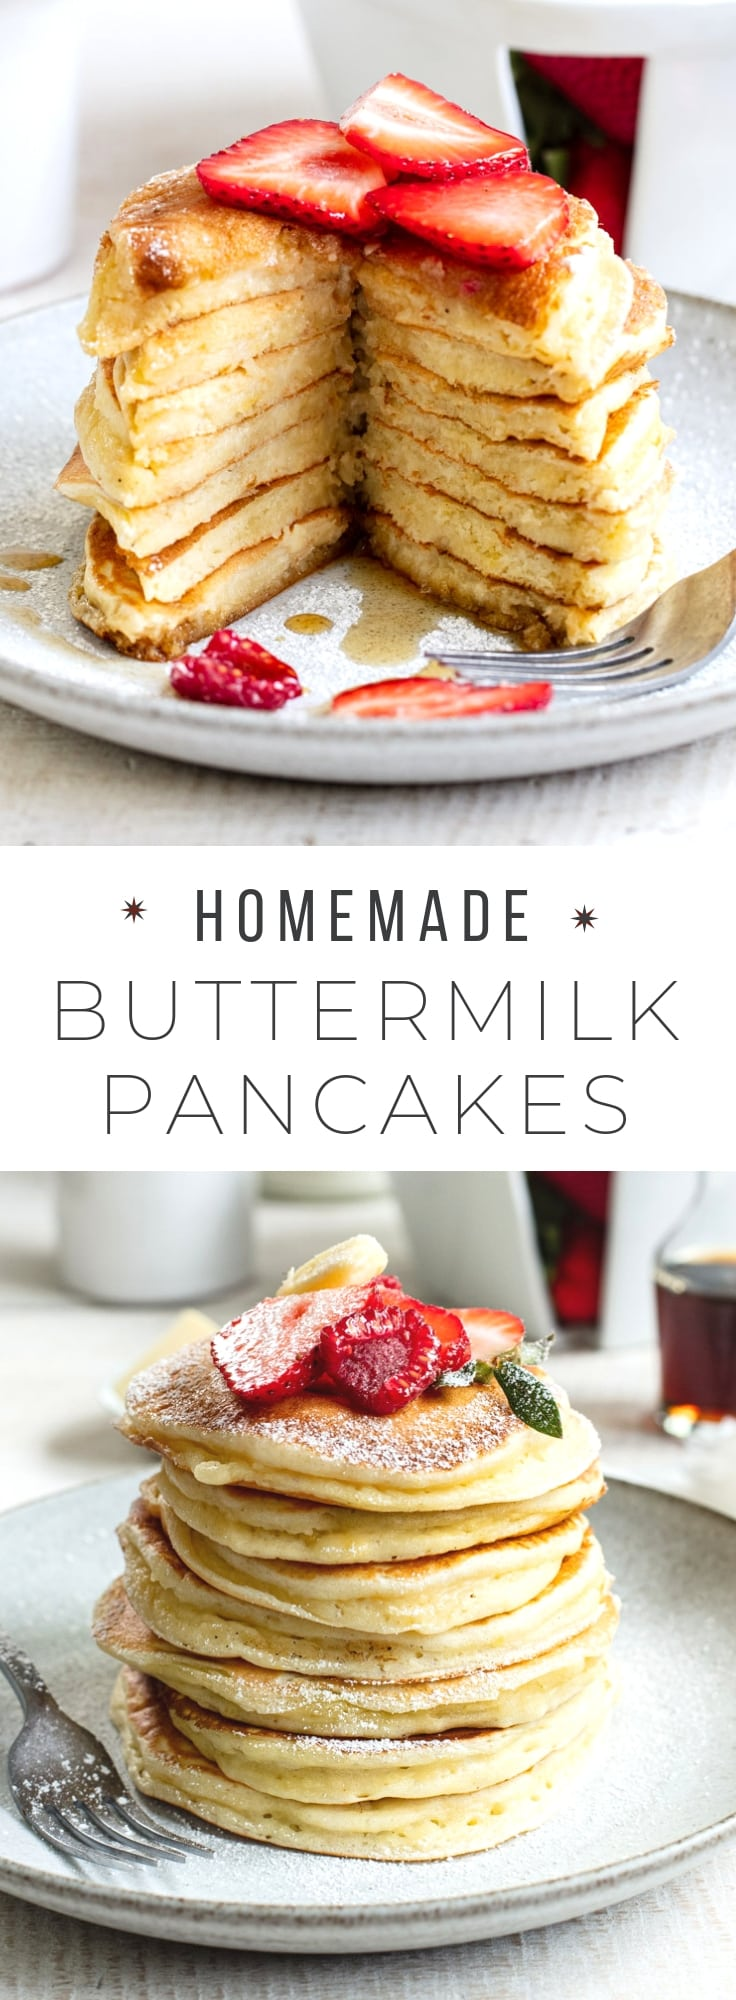 How to Make Fluffy Buttermilk Pancakes From Scratch